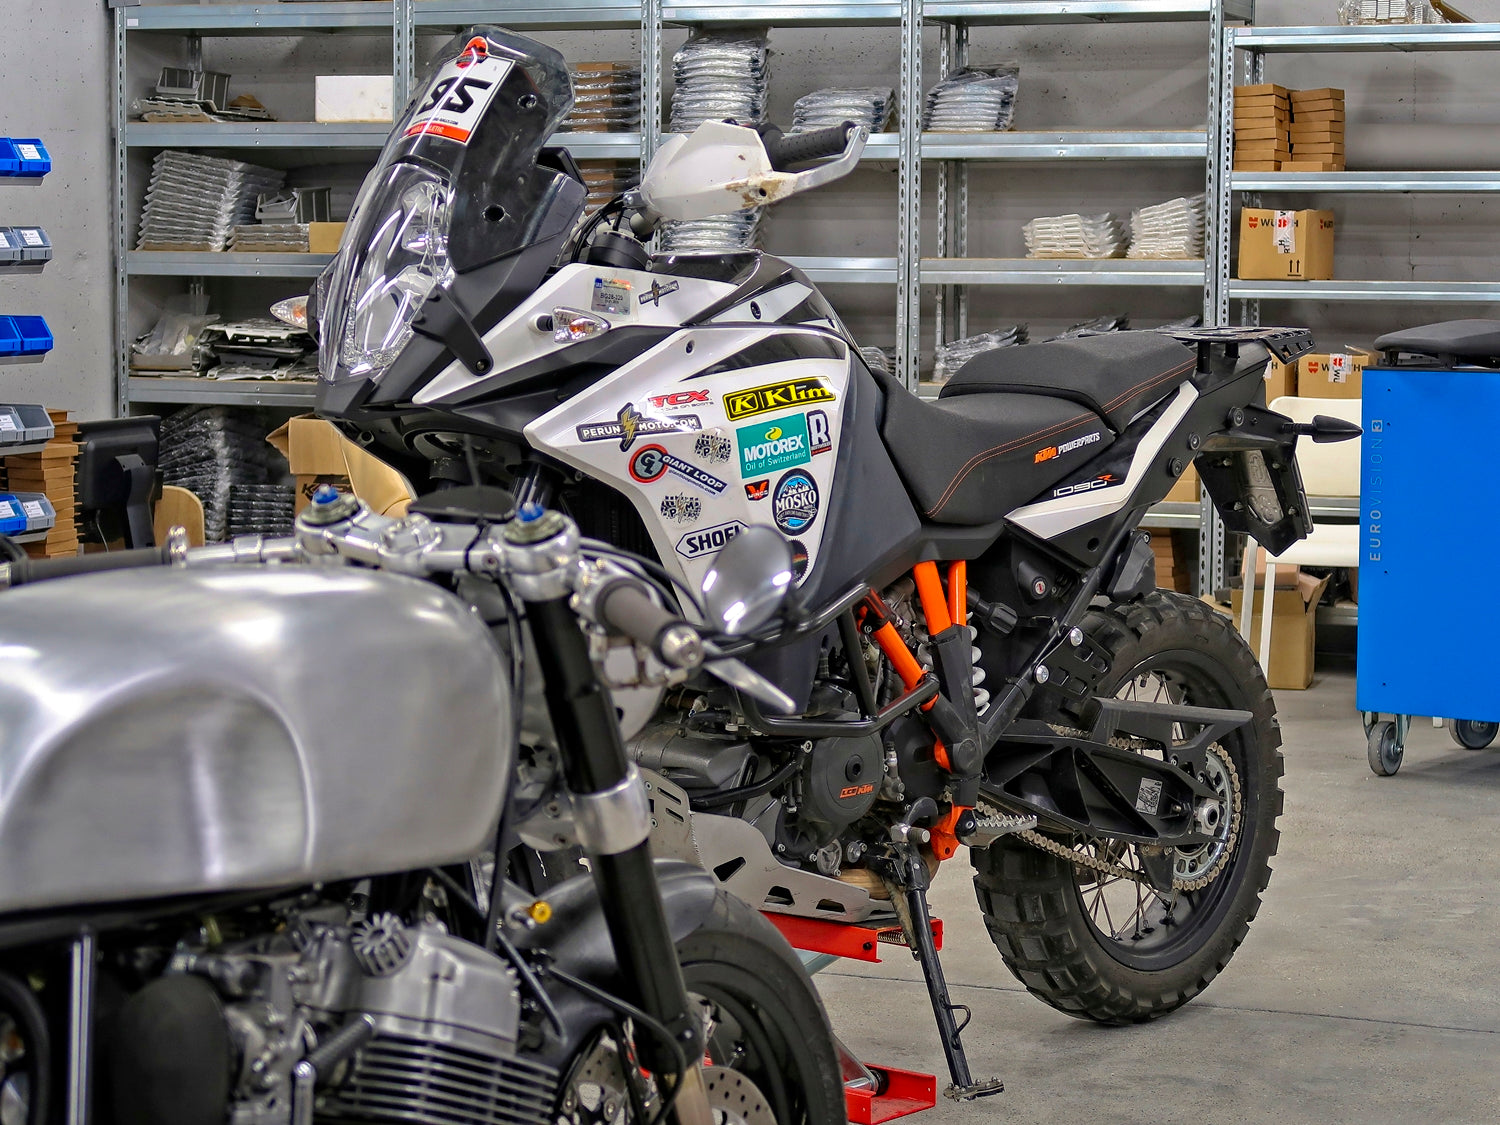 KTM Adventure 1090 R vs custom built Messner moto Honda CB750 cafe racer